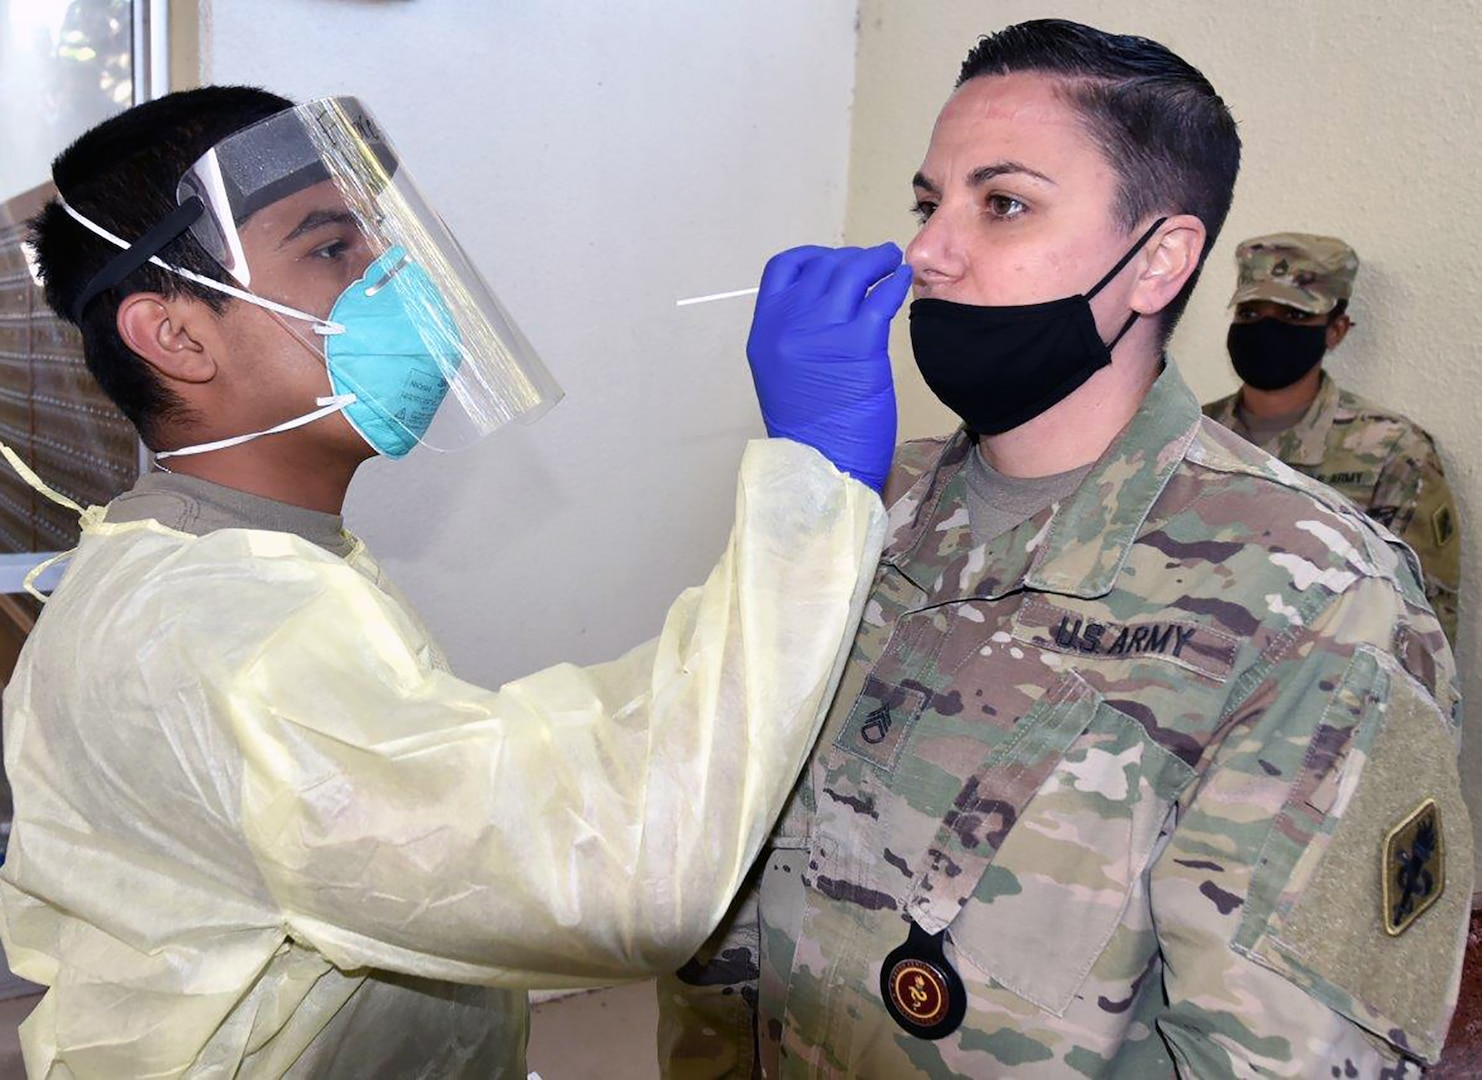 Pvt. Daniel Flores with Company A, 232nd Medical Battalion, uses a cotton swap to test Staff Sgt. Nicole Conti with Company A, 188th Medical Battalion, for COVID-19.